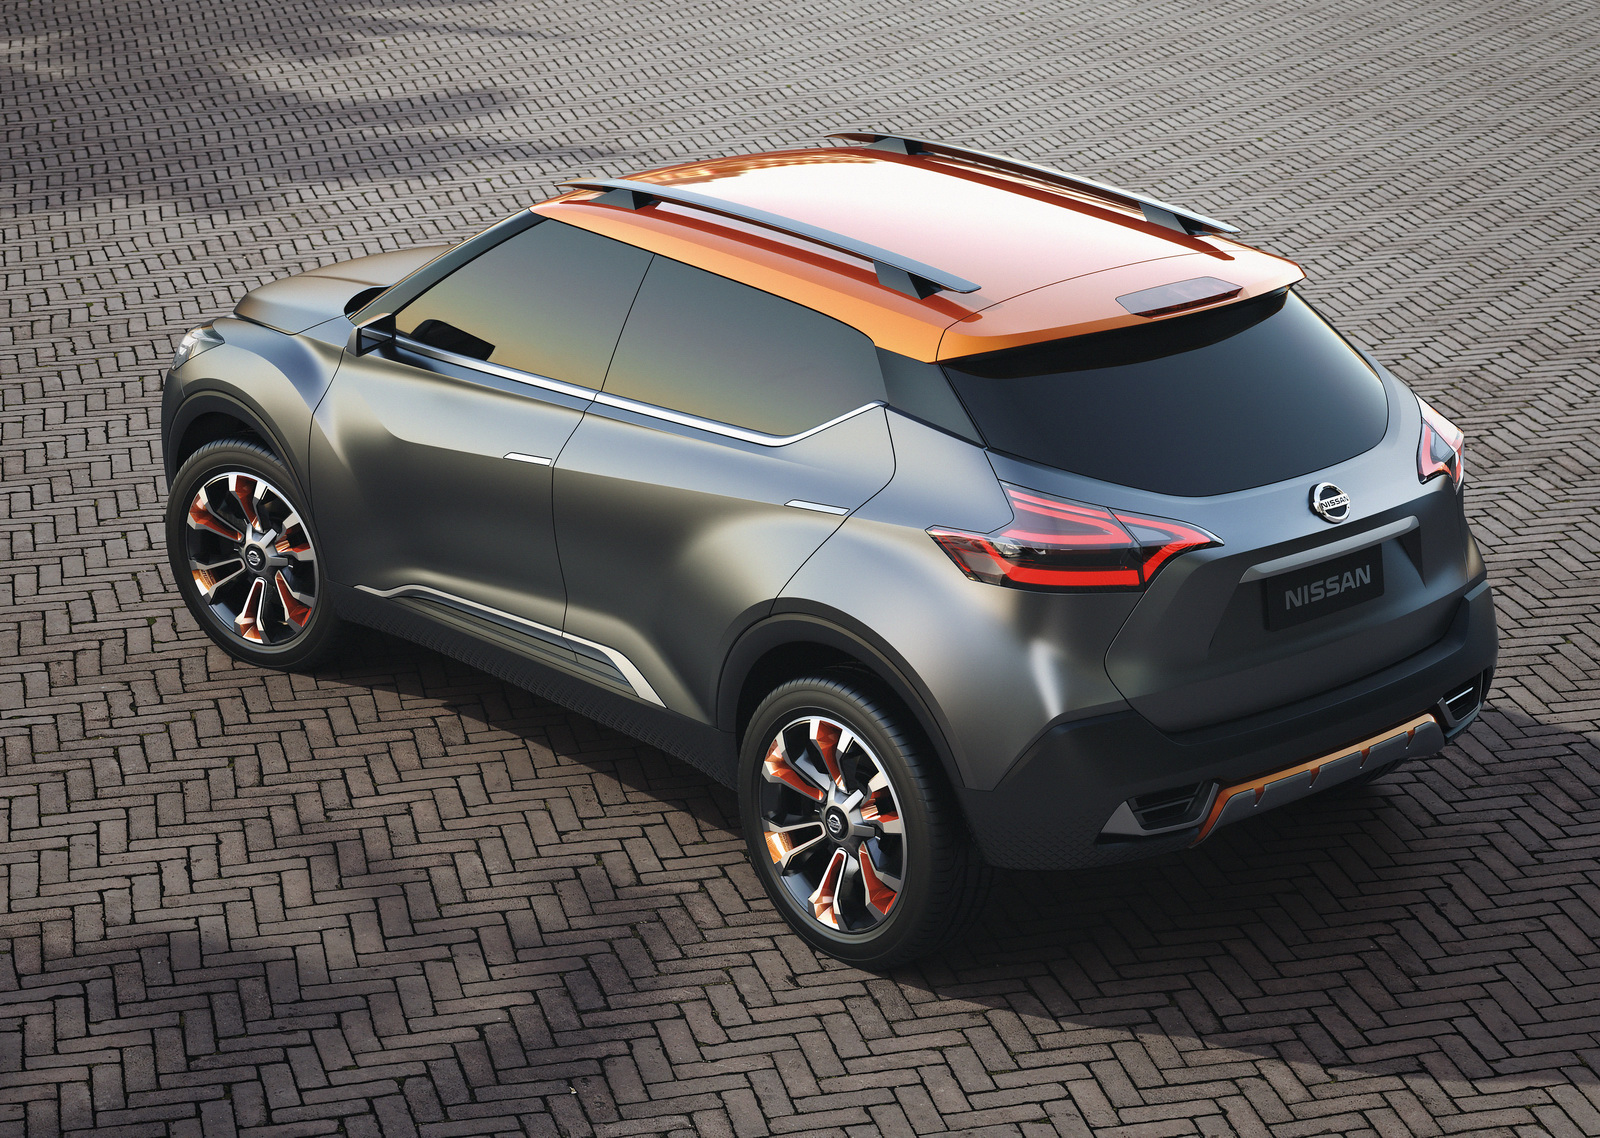 2017 Nissan Gt R Nismo >> Nissan Kicks SUV to Debut in 2016 as the Official Car of the Olympics in Rio de Janeiro ...